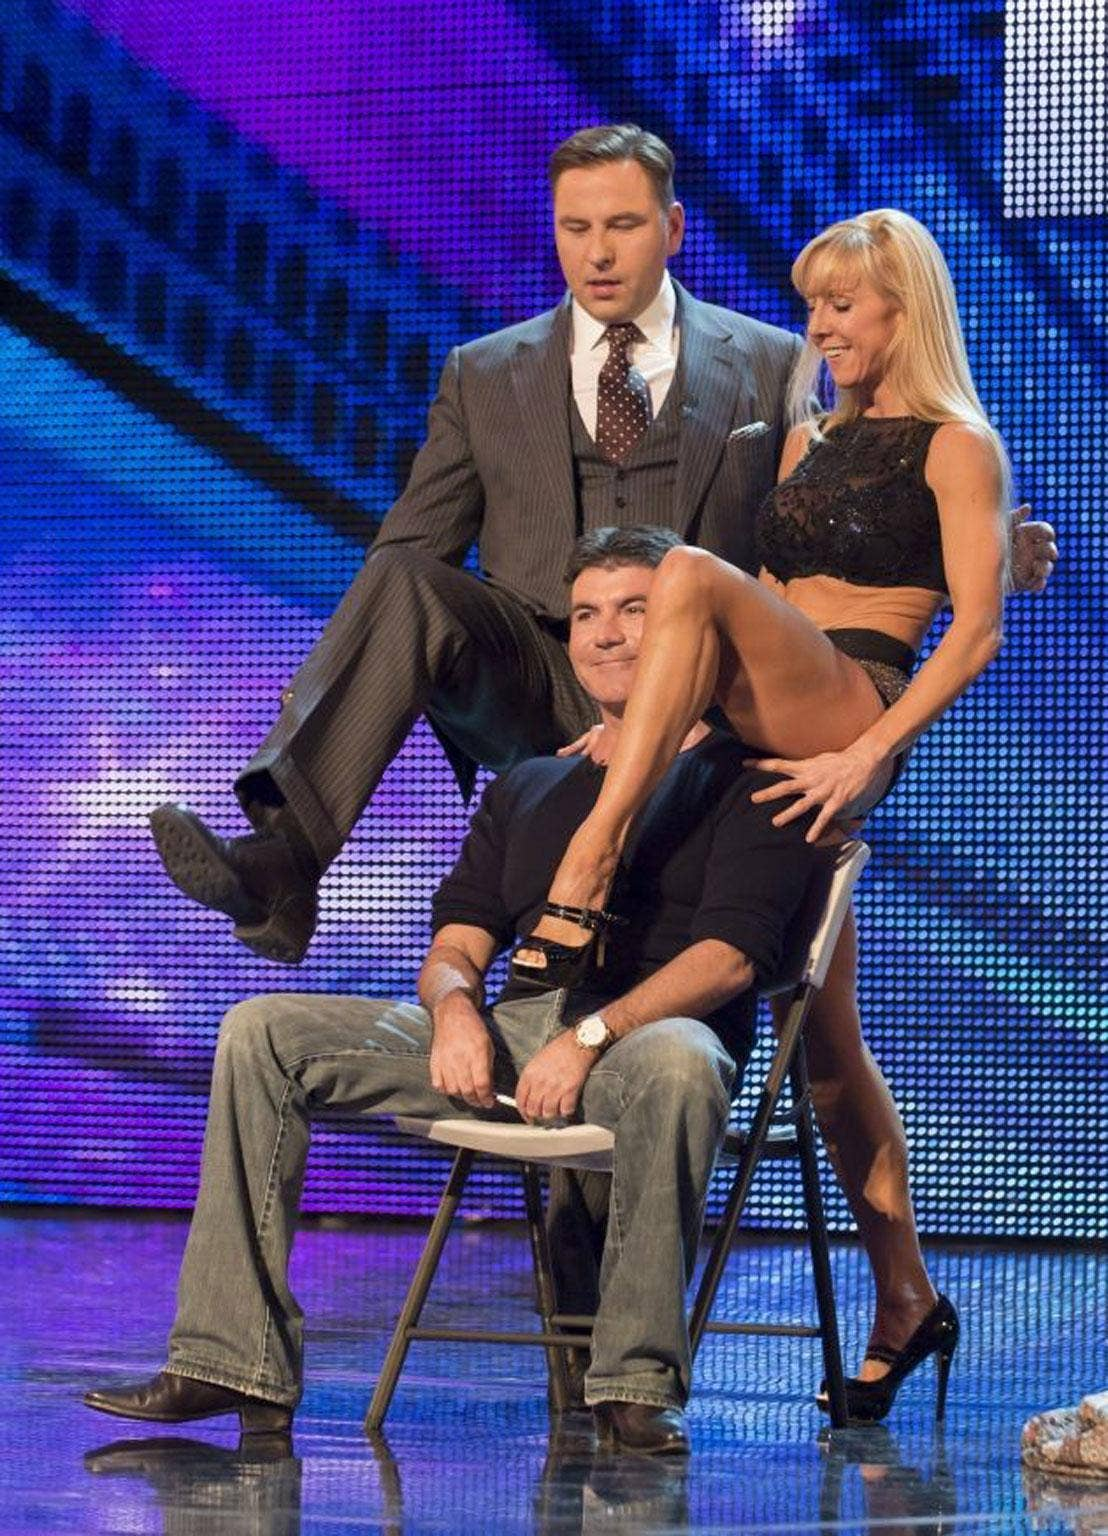 David Walliams, Simon Cowell joined Keri, a contestant, on the Britainís Got Talent stage for the first time ever.